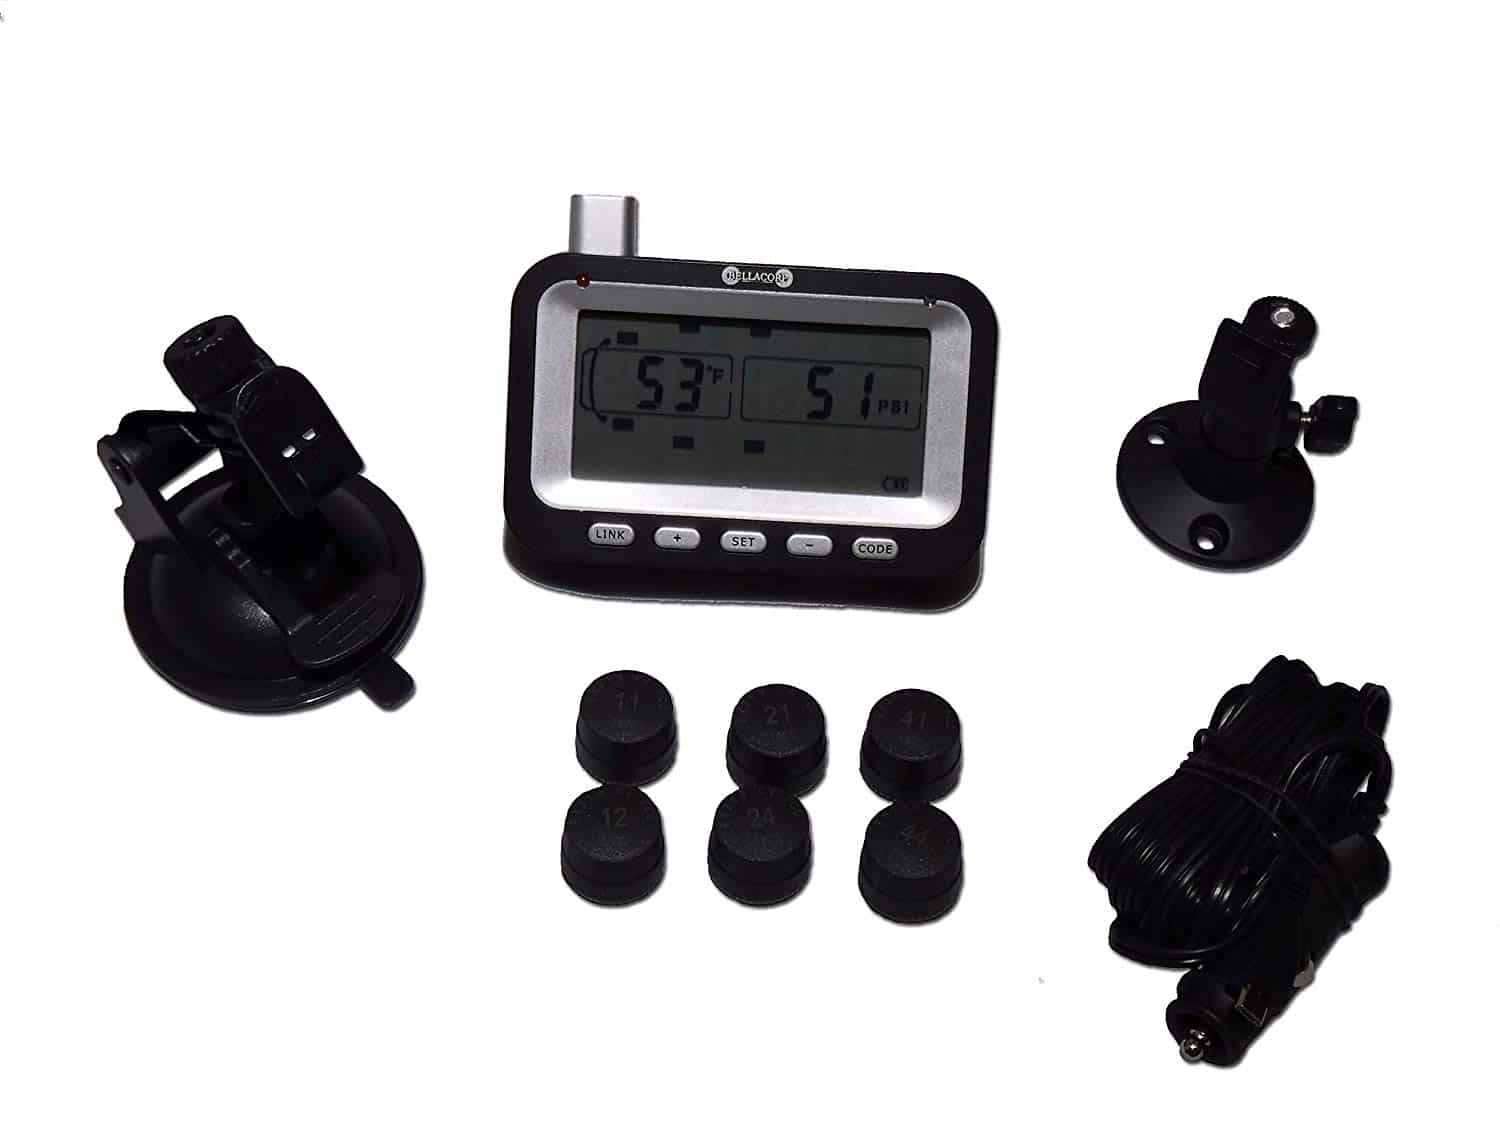 BELLACORP Tire Pressure Monitoring System